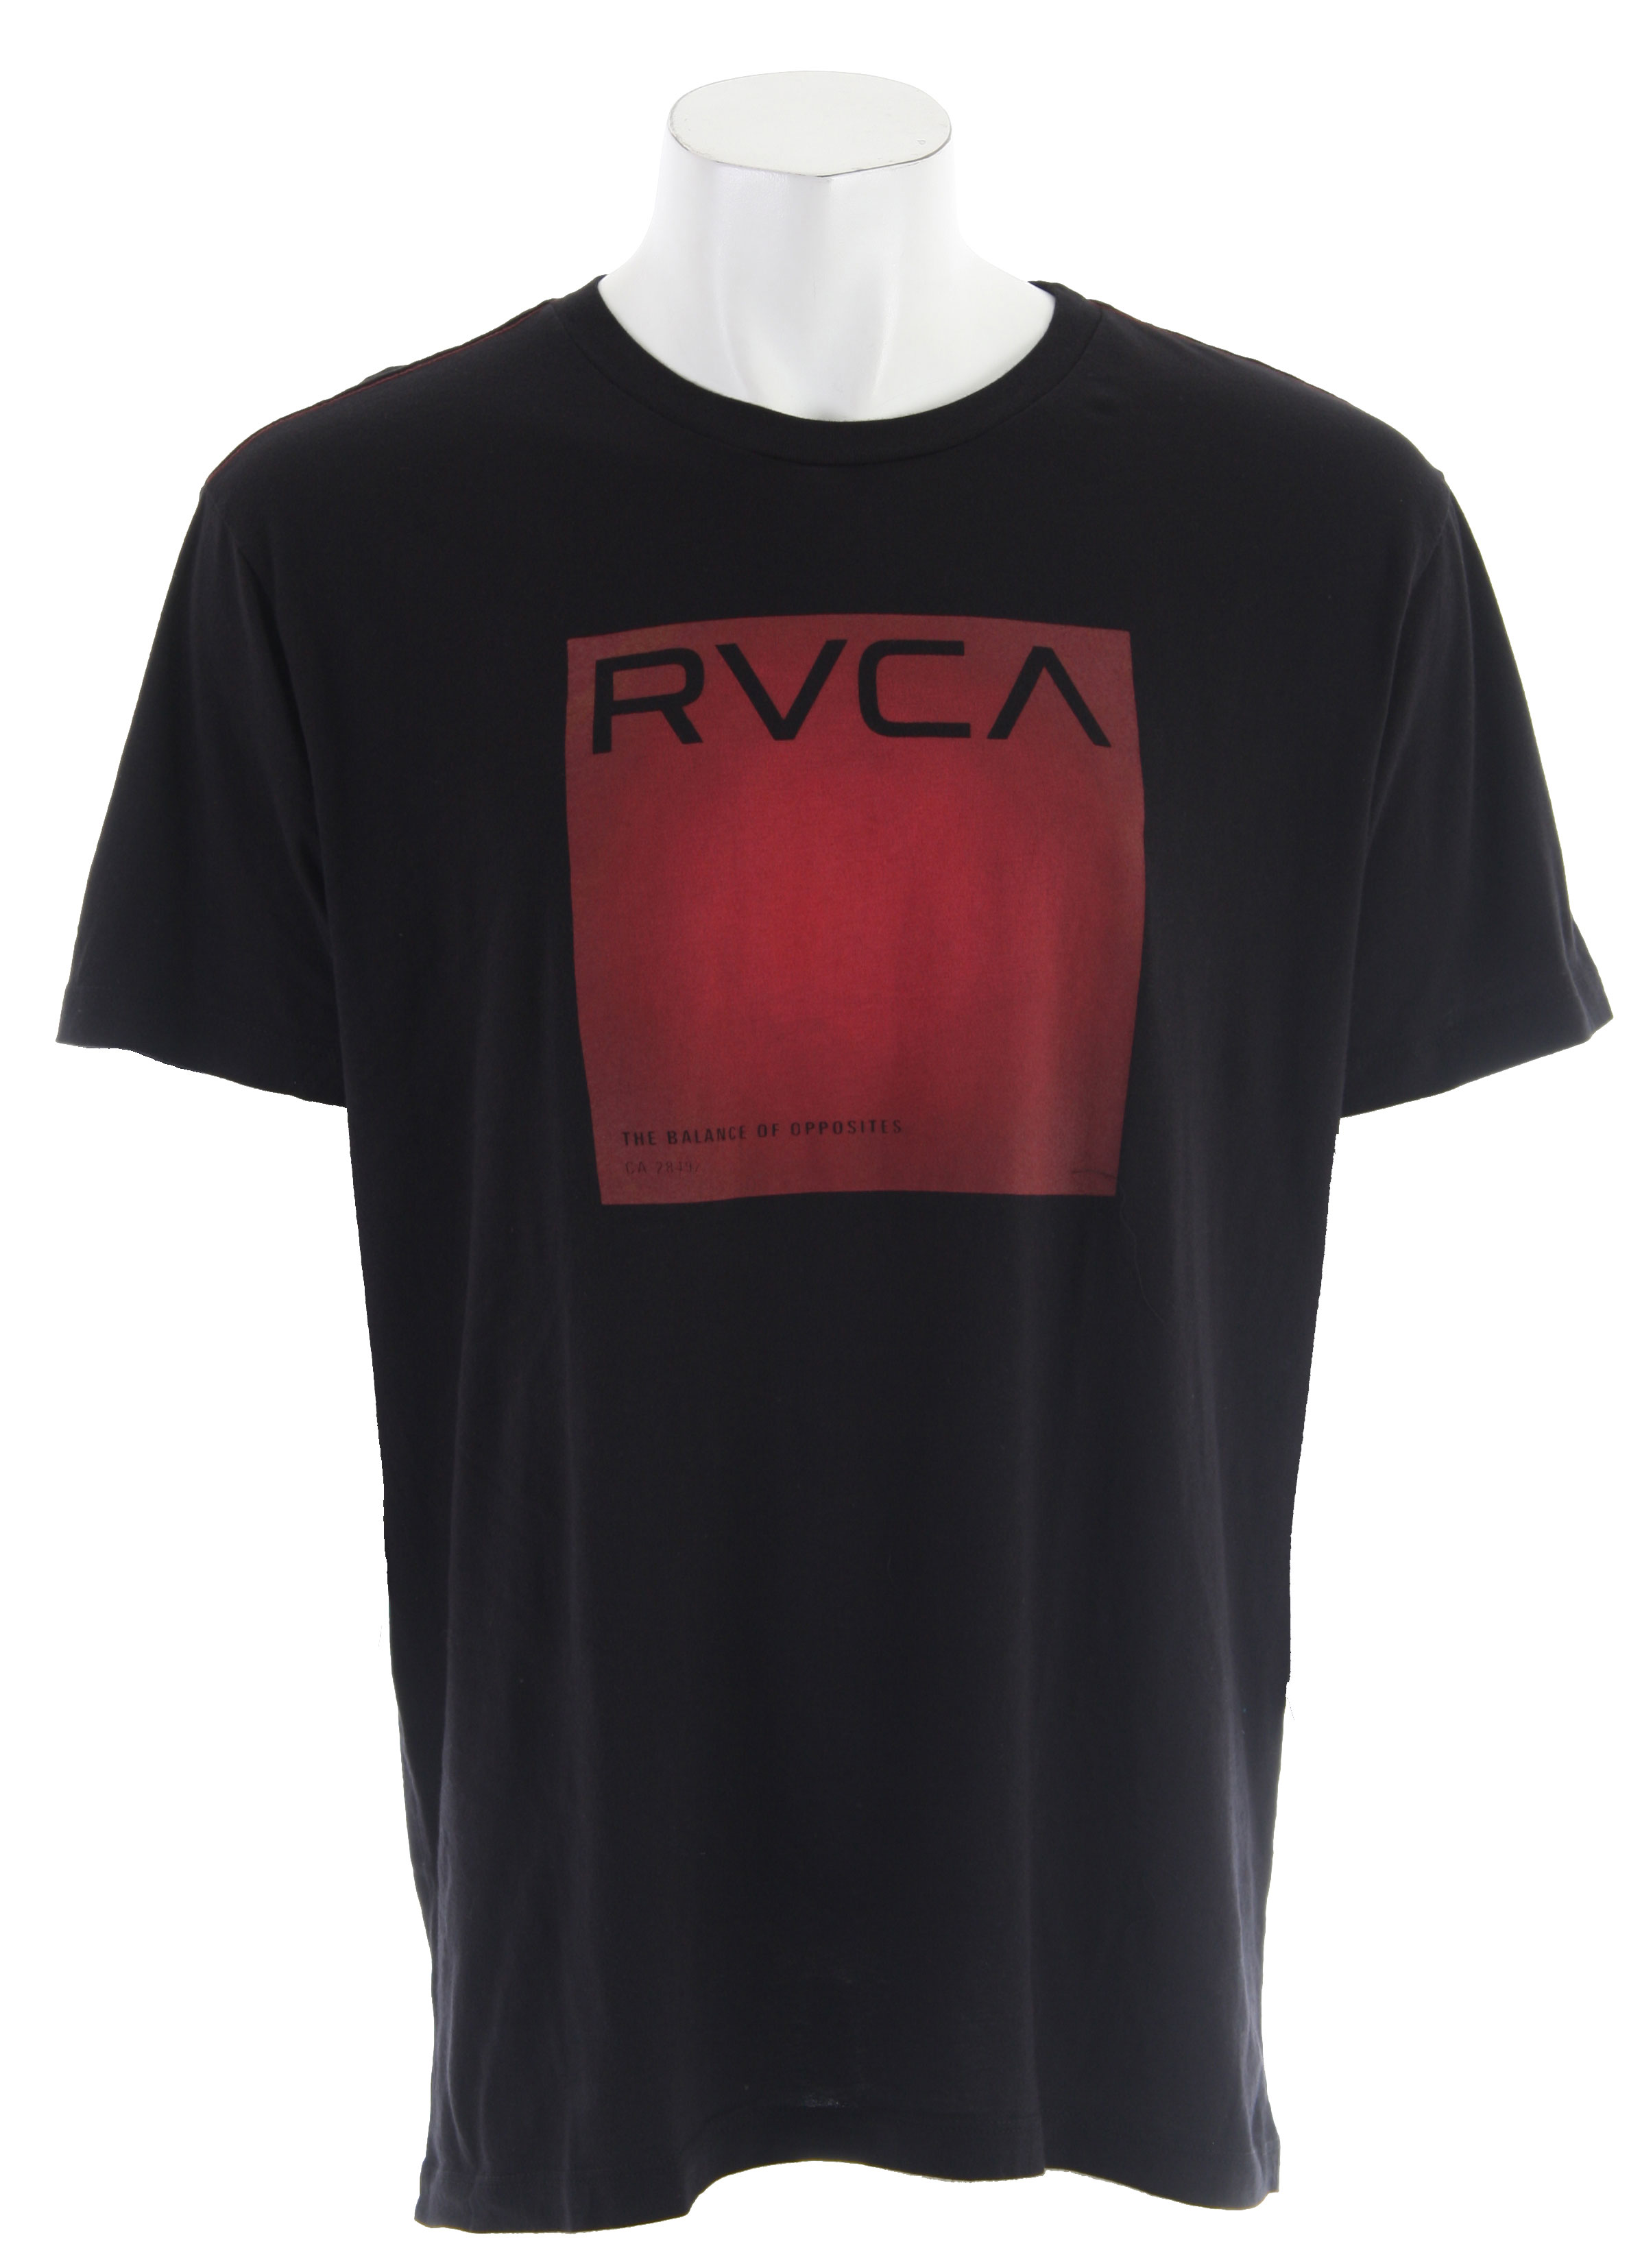 Key Features of The RVCA Process T-Shirt: Regular Fit Crew Neck Short Sleeve RVCA's Vintage Dye 100% Cotton Tee Signature Red Contrast Stitch - $17.95